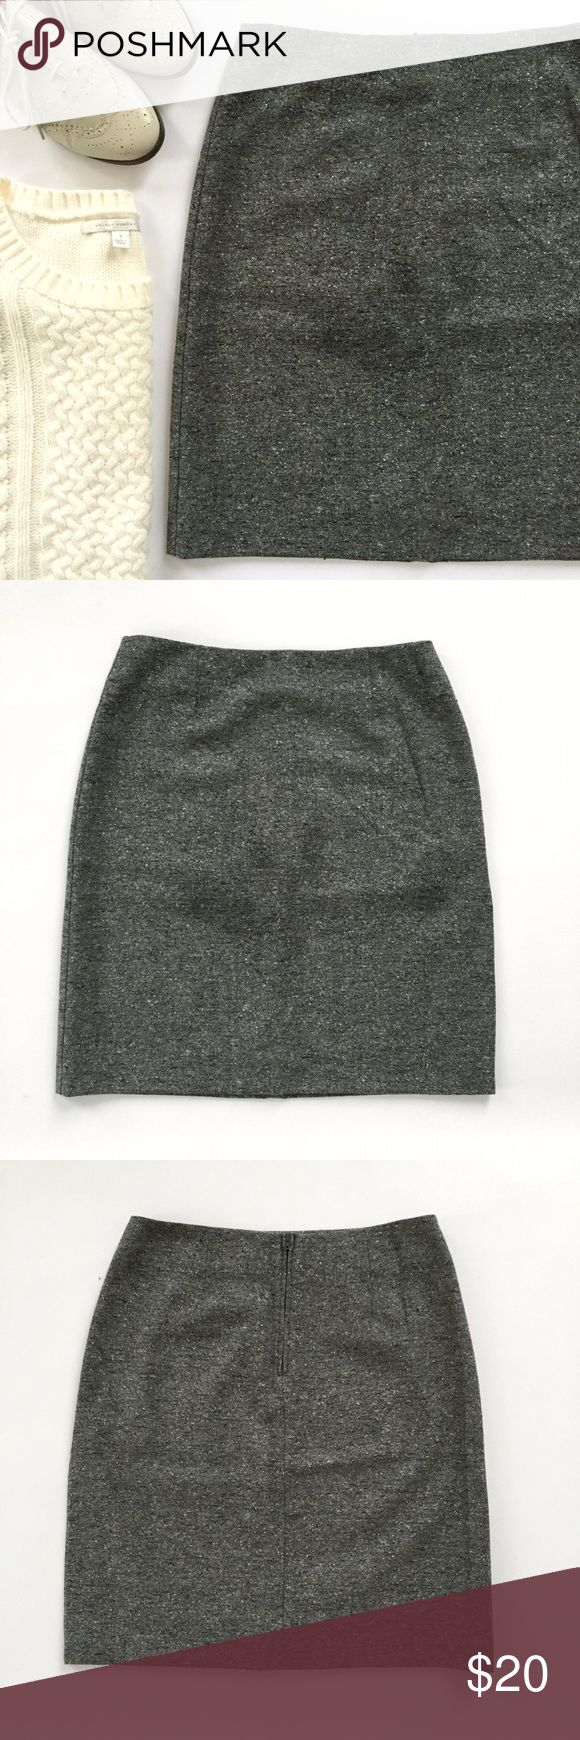 United Colors of Benetton wool tweed mini skirt Cute and classic wool blend miniskirt in EUC! Black, grey, and white tweed. Italian size 42/US size 6. Please read measurements carefully. GET THE LOOK: Everything in the cover shot is for sale in my closet. • Side zip, fully lined • Deep slit in the back (9.5 inches) • Length is 20 inches, waist is 13.5 inches lying flat • 70% wool / 15% nylon / 15% silk. Lining is 100% nylon • Dry clean only United Colors Of Benetton Skirts Mini